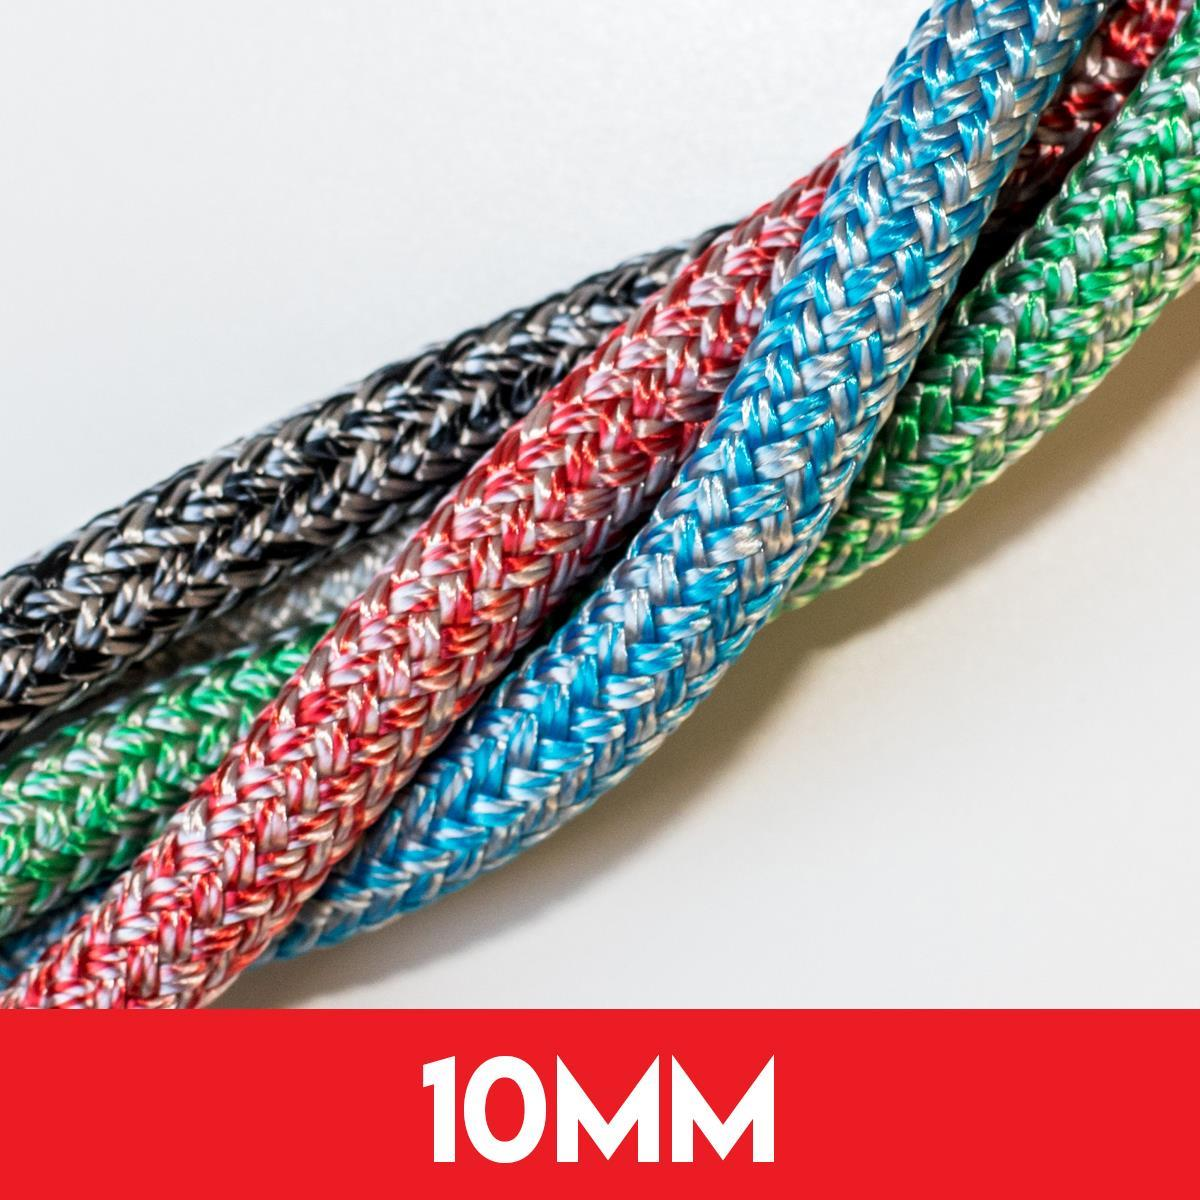 10mm Dyneema Cruise Rope